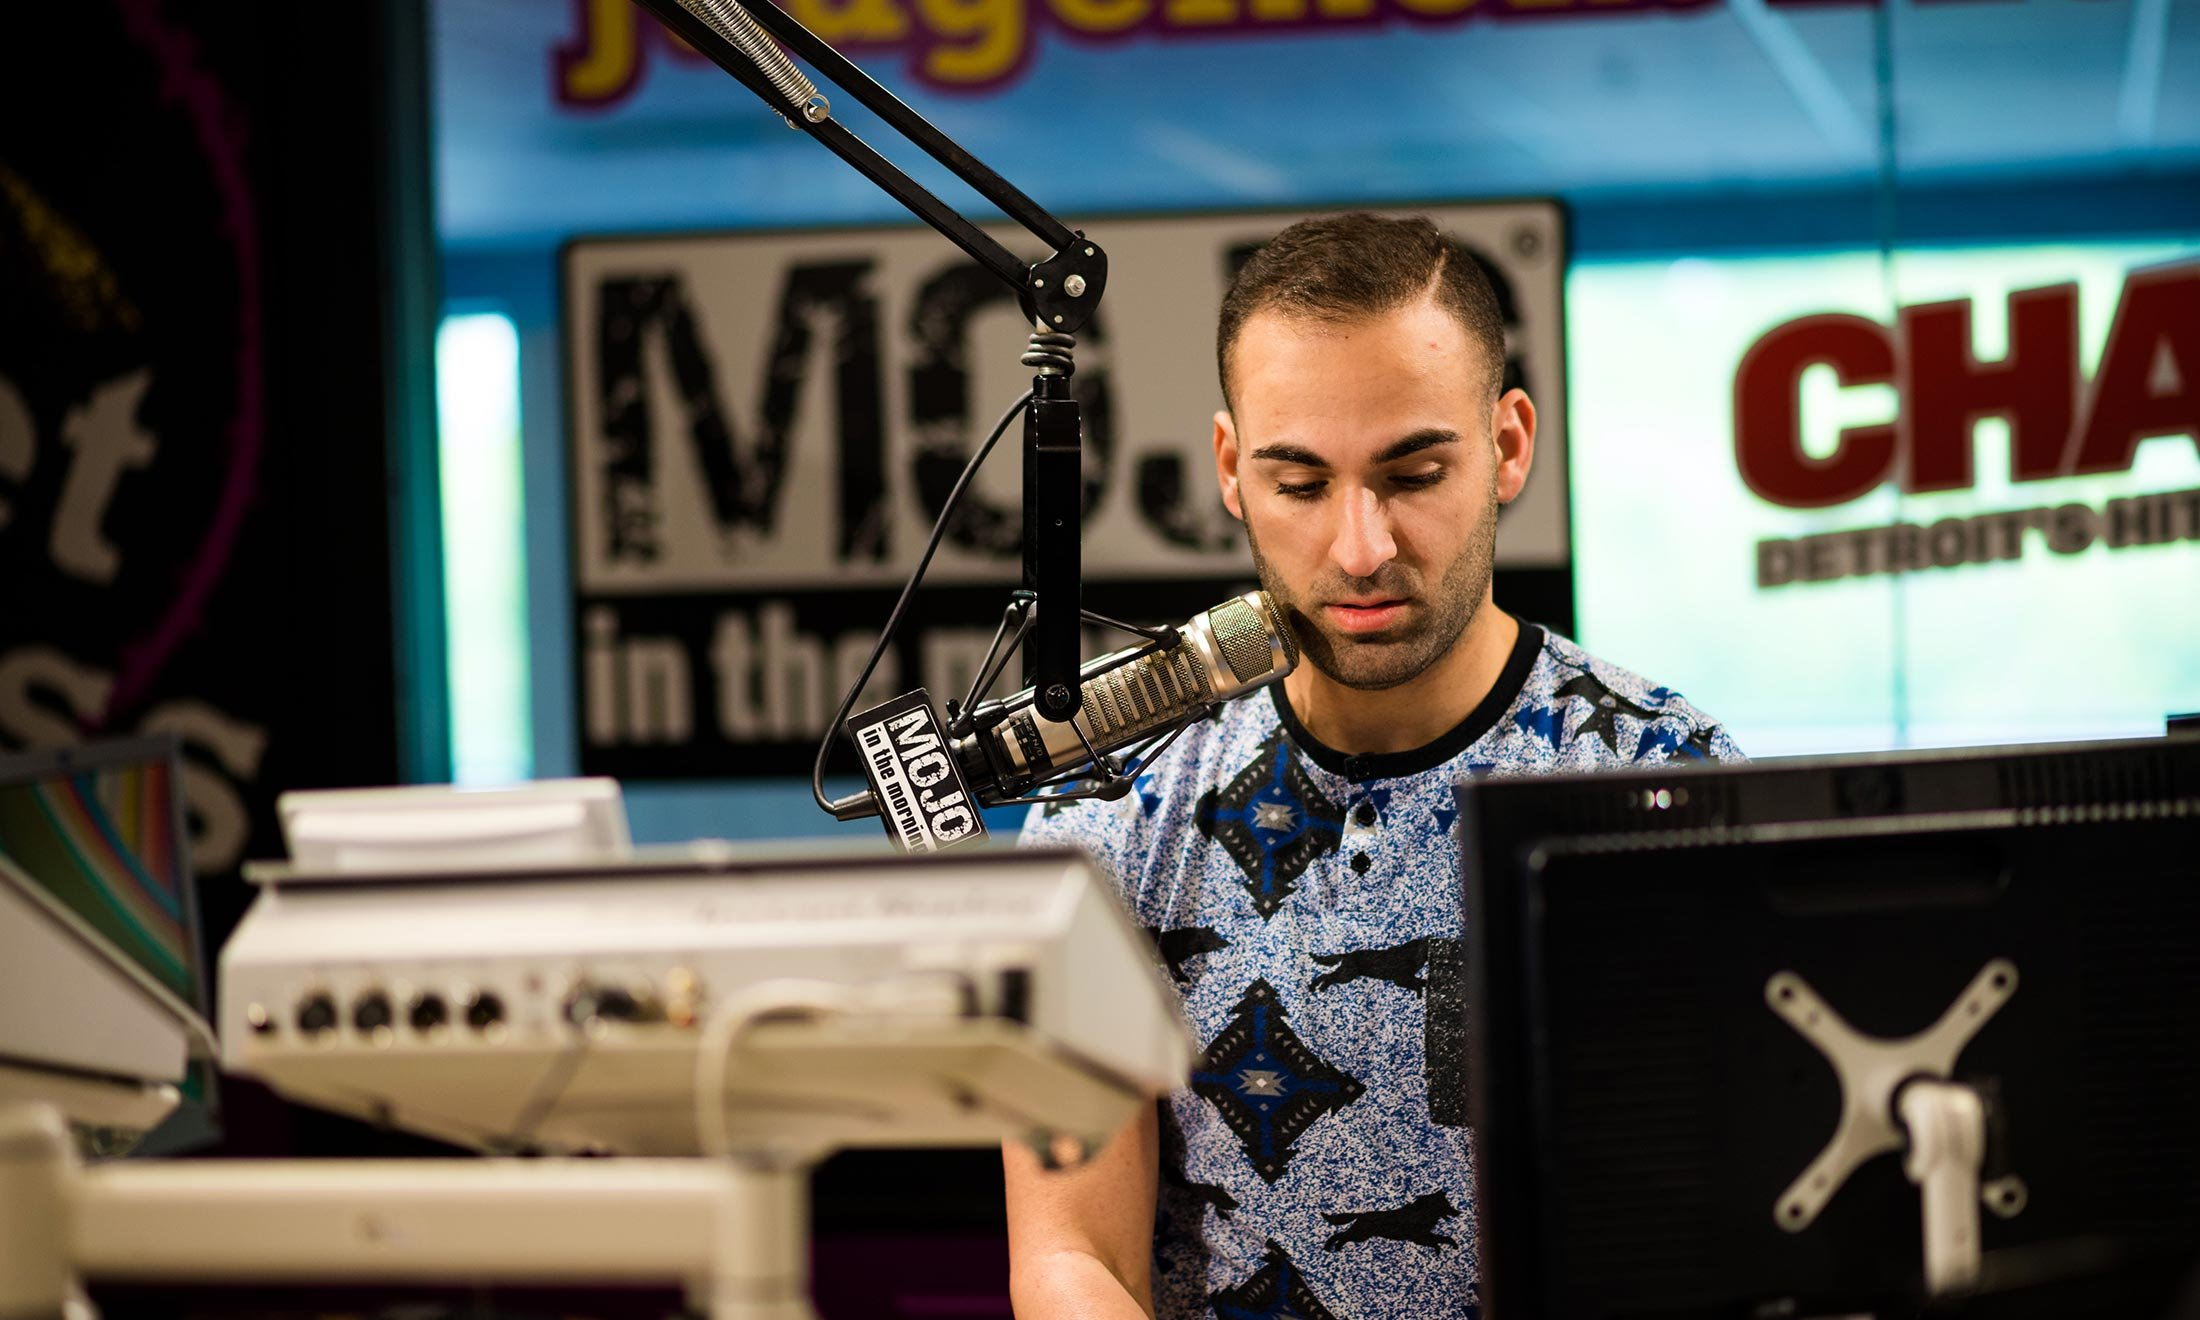 Joe Namou does a sound check in the iHeartRadio studio